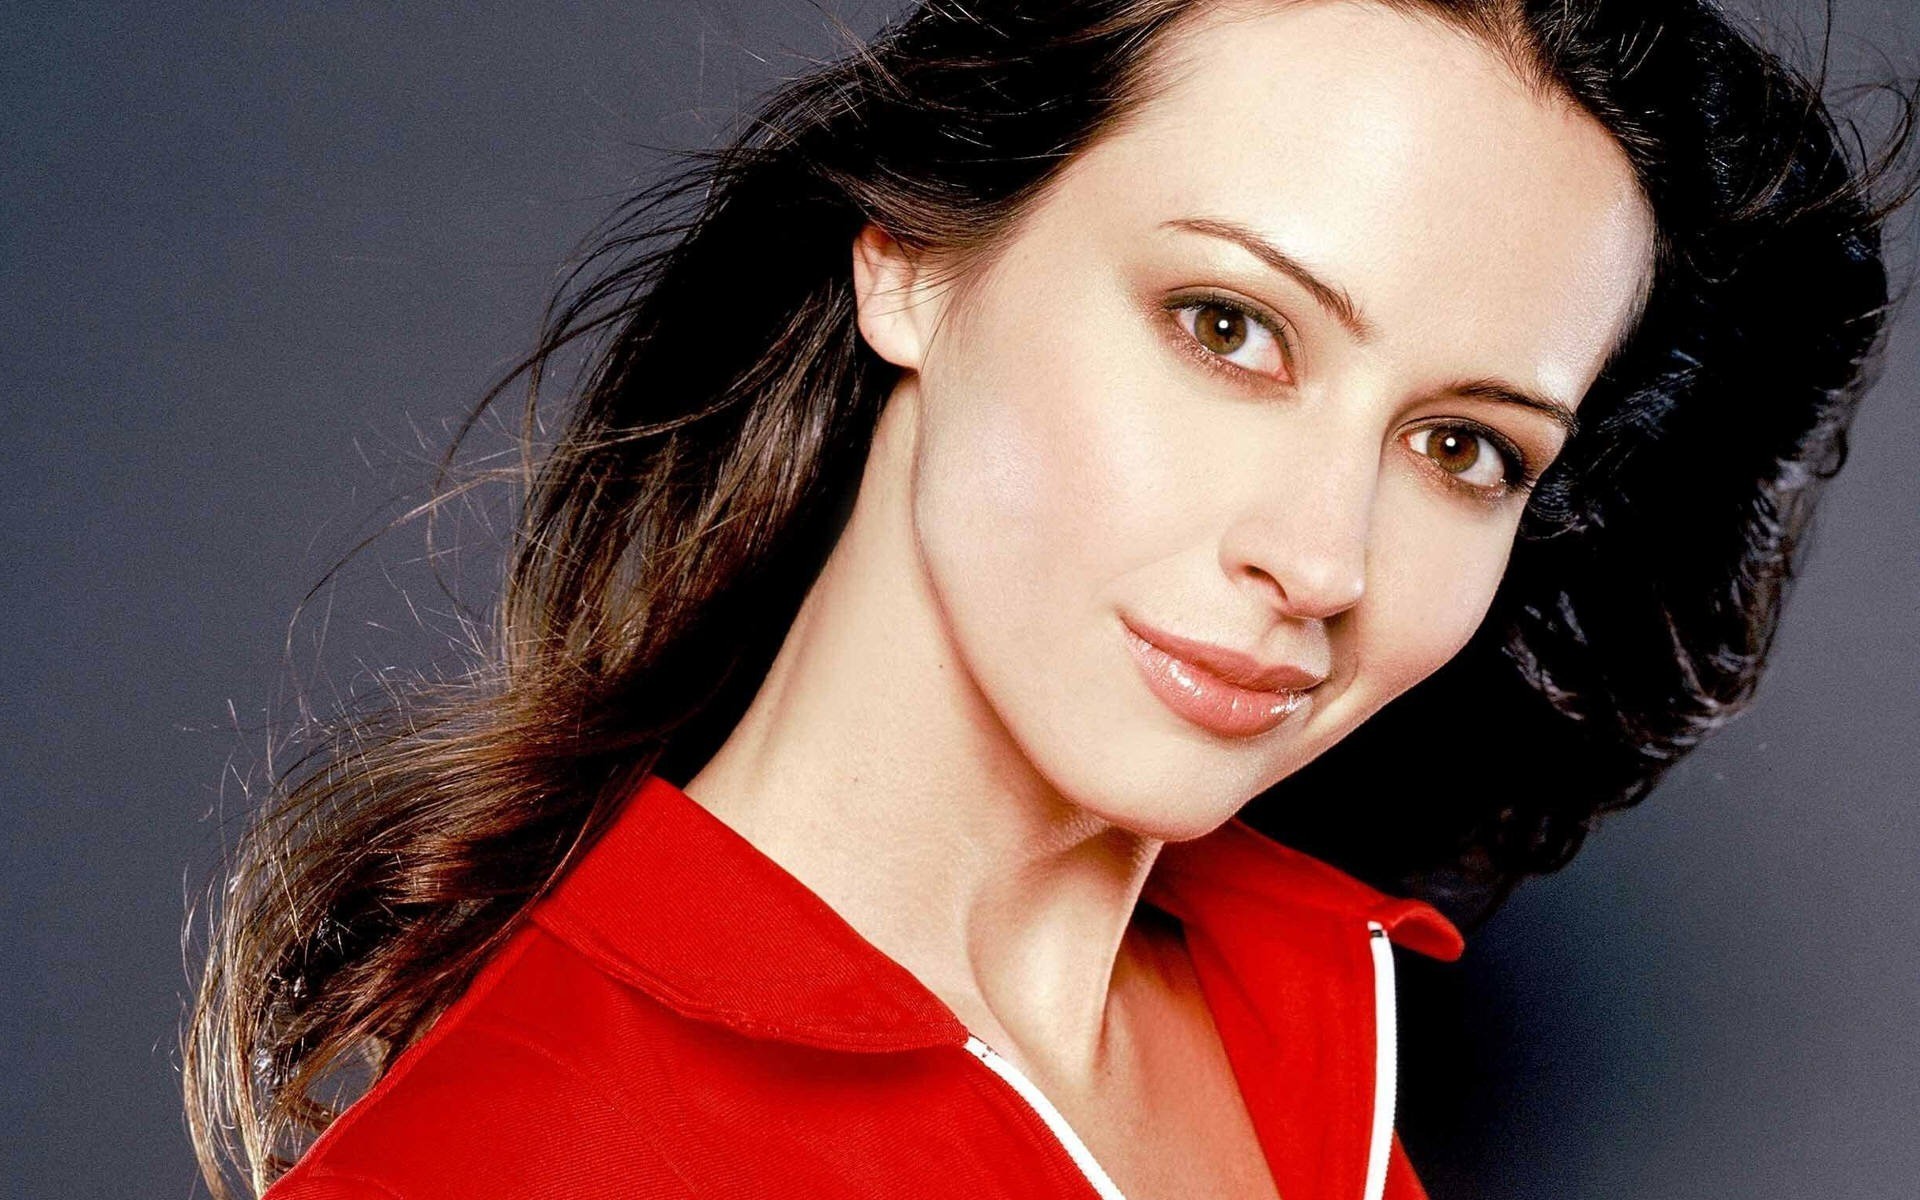 Amy Acker #002 - 1920x1200 Wallpapers Pictures Photos Images